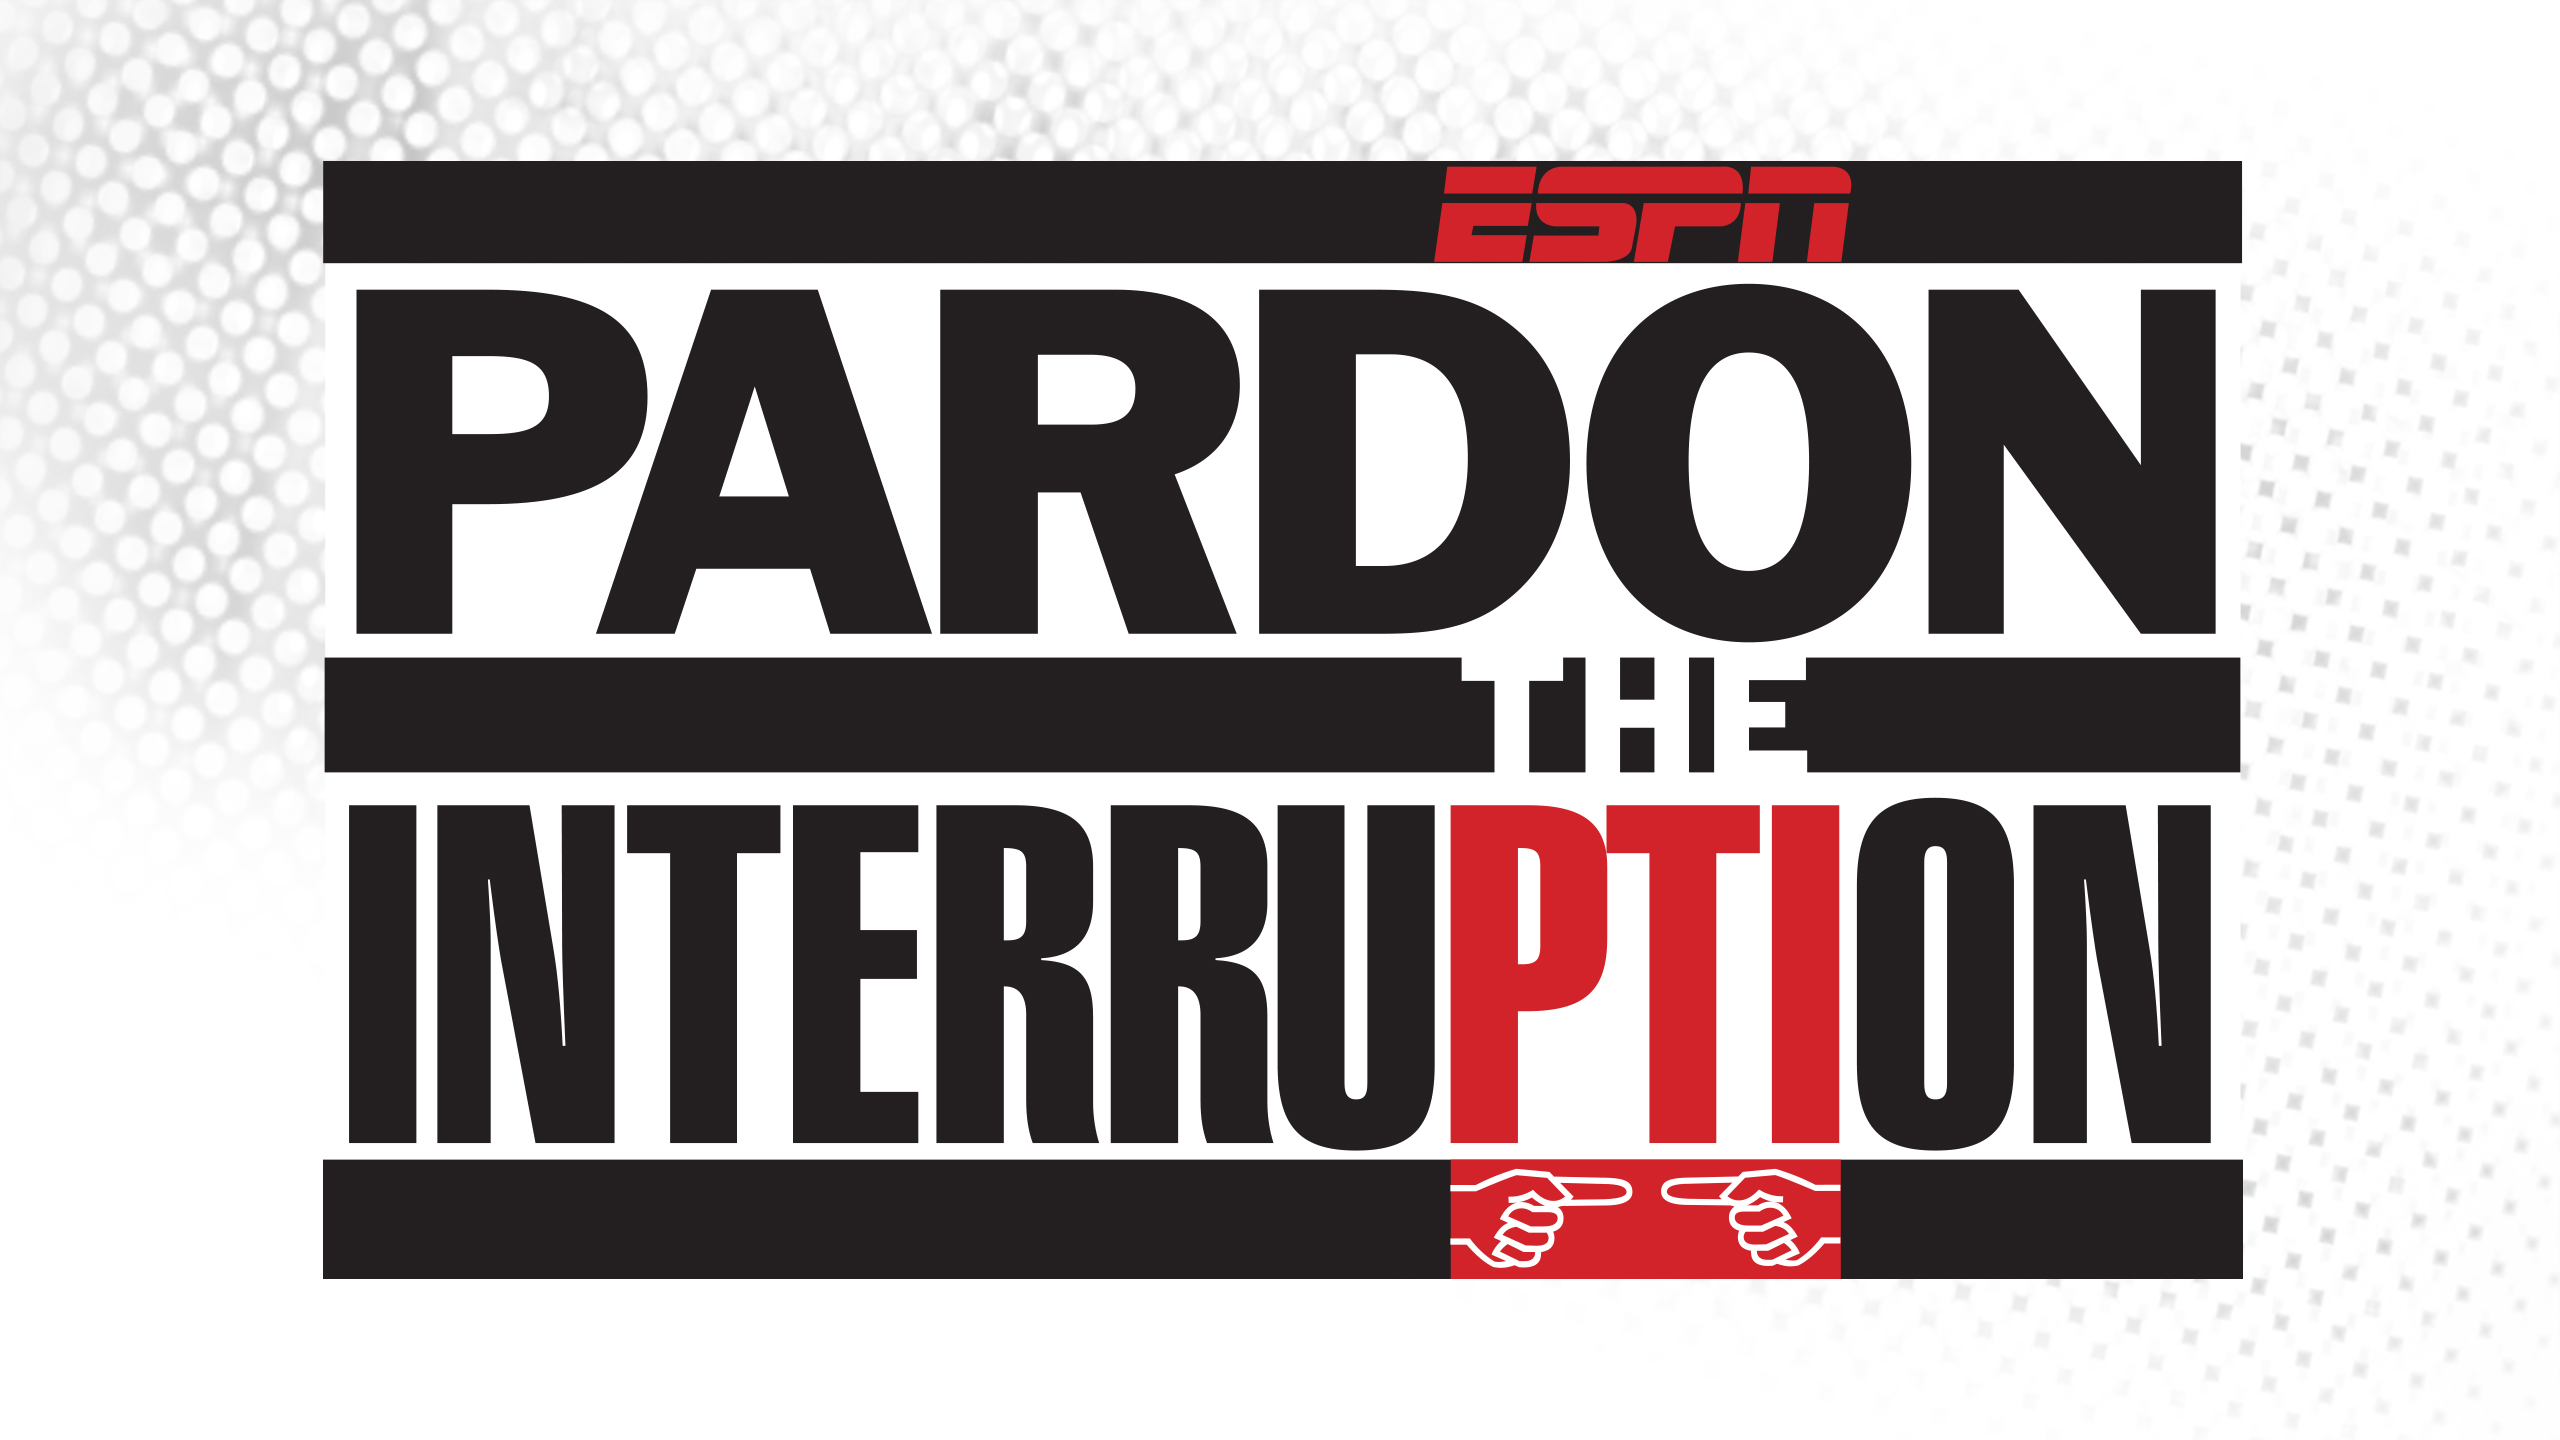 Thu, 10/18 - Pardon The Interruption